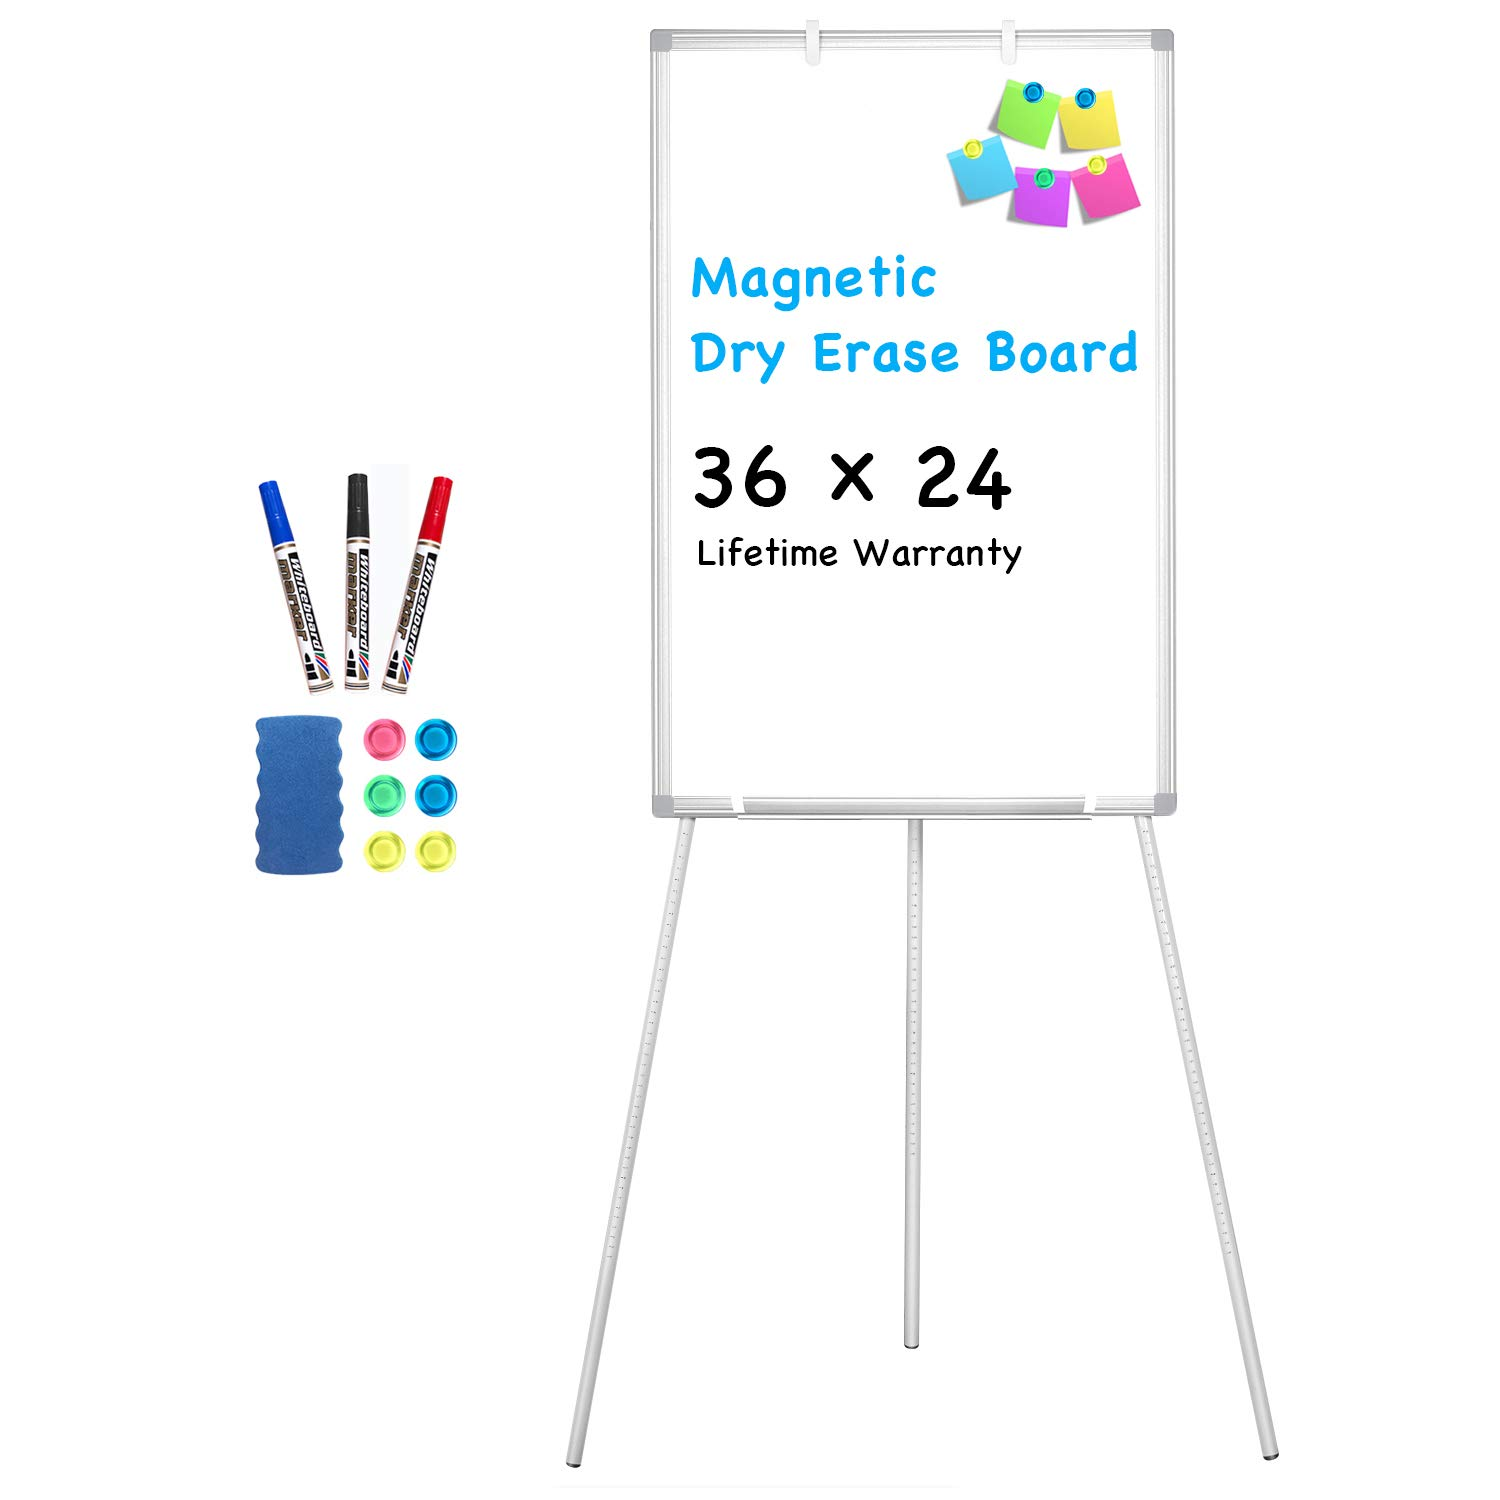 Easel Whiteboard - Magnetic Portable Dry Erase Easel Board 36 x 24 Tripod Whiteboard Height Adjustable Flipchart Easel Stand White Board for Office or Teaching at Home & Classroom